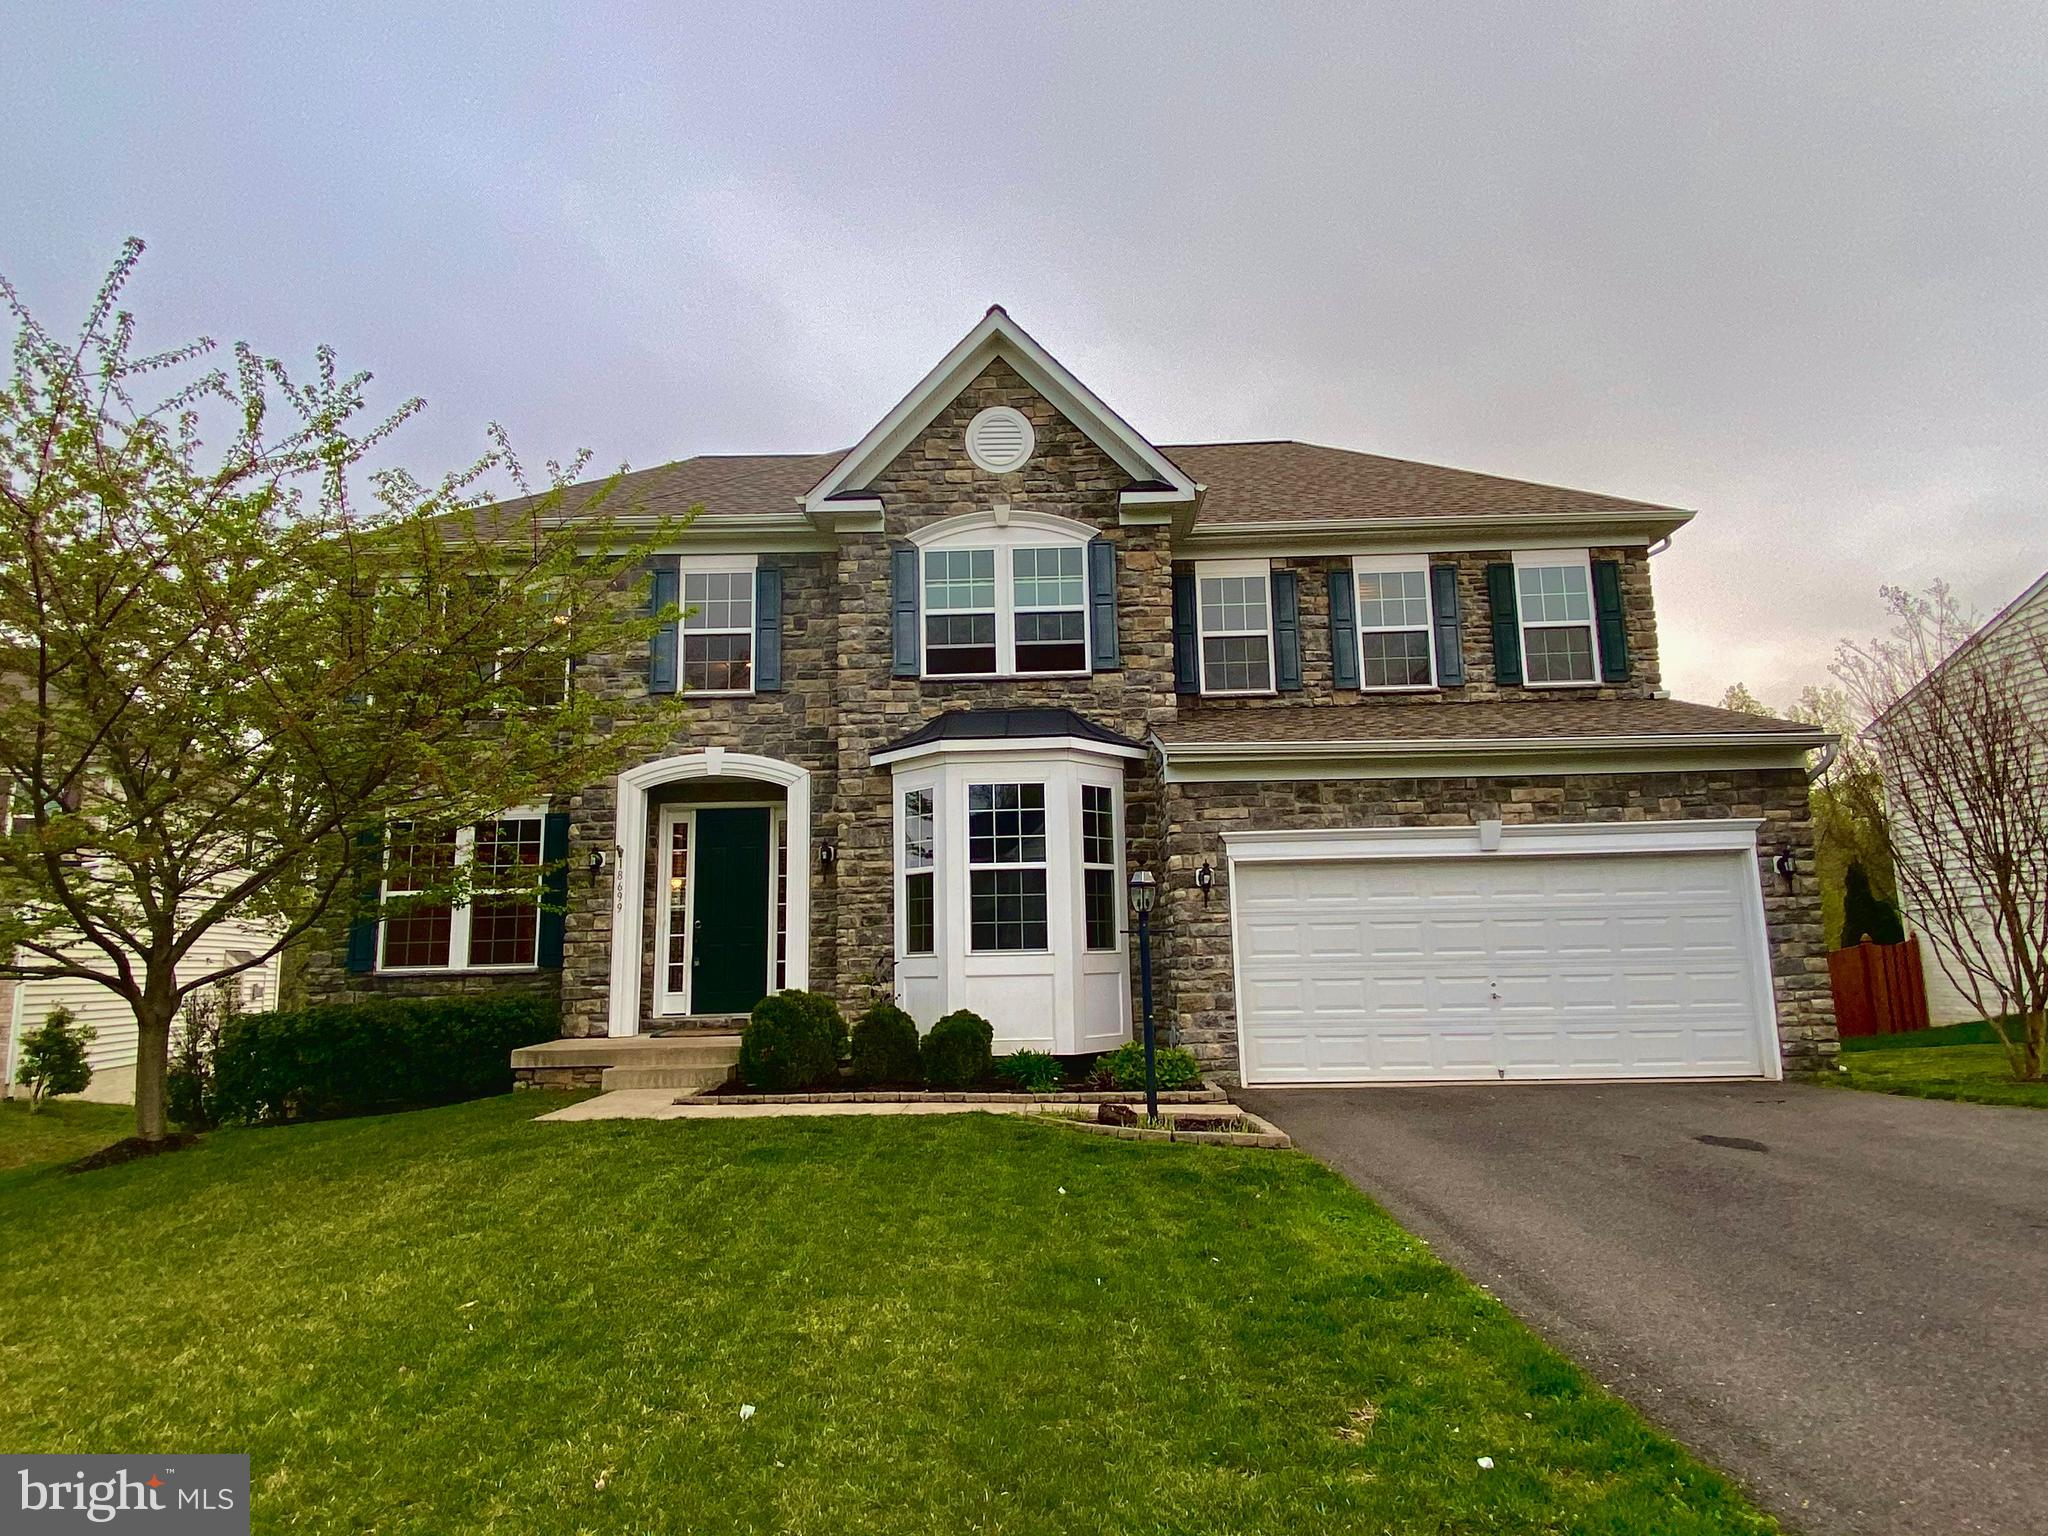 INCREDIBLE, MOVE-IN READY!! ABSOLUTELY GORGEOUS STONE FRONT  6 BDRM/3.5 BA COLONIAL HOME IN STONEWAL